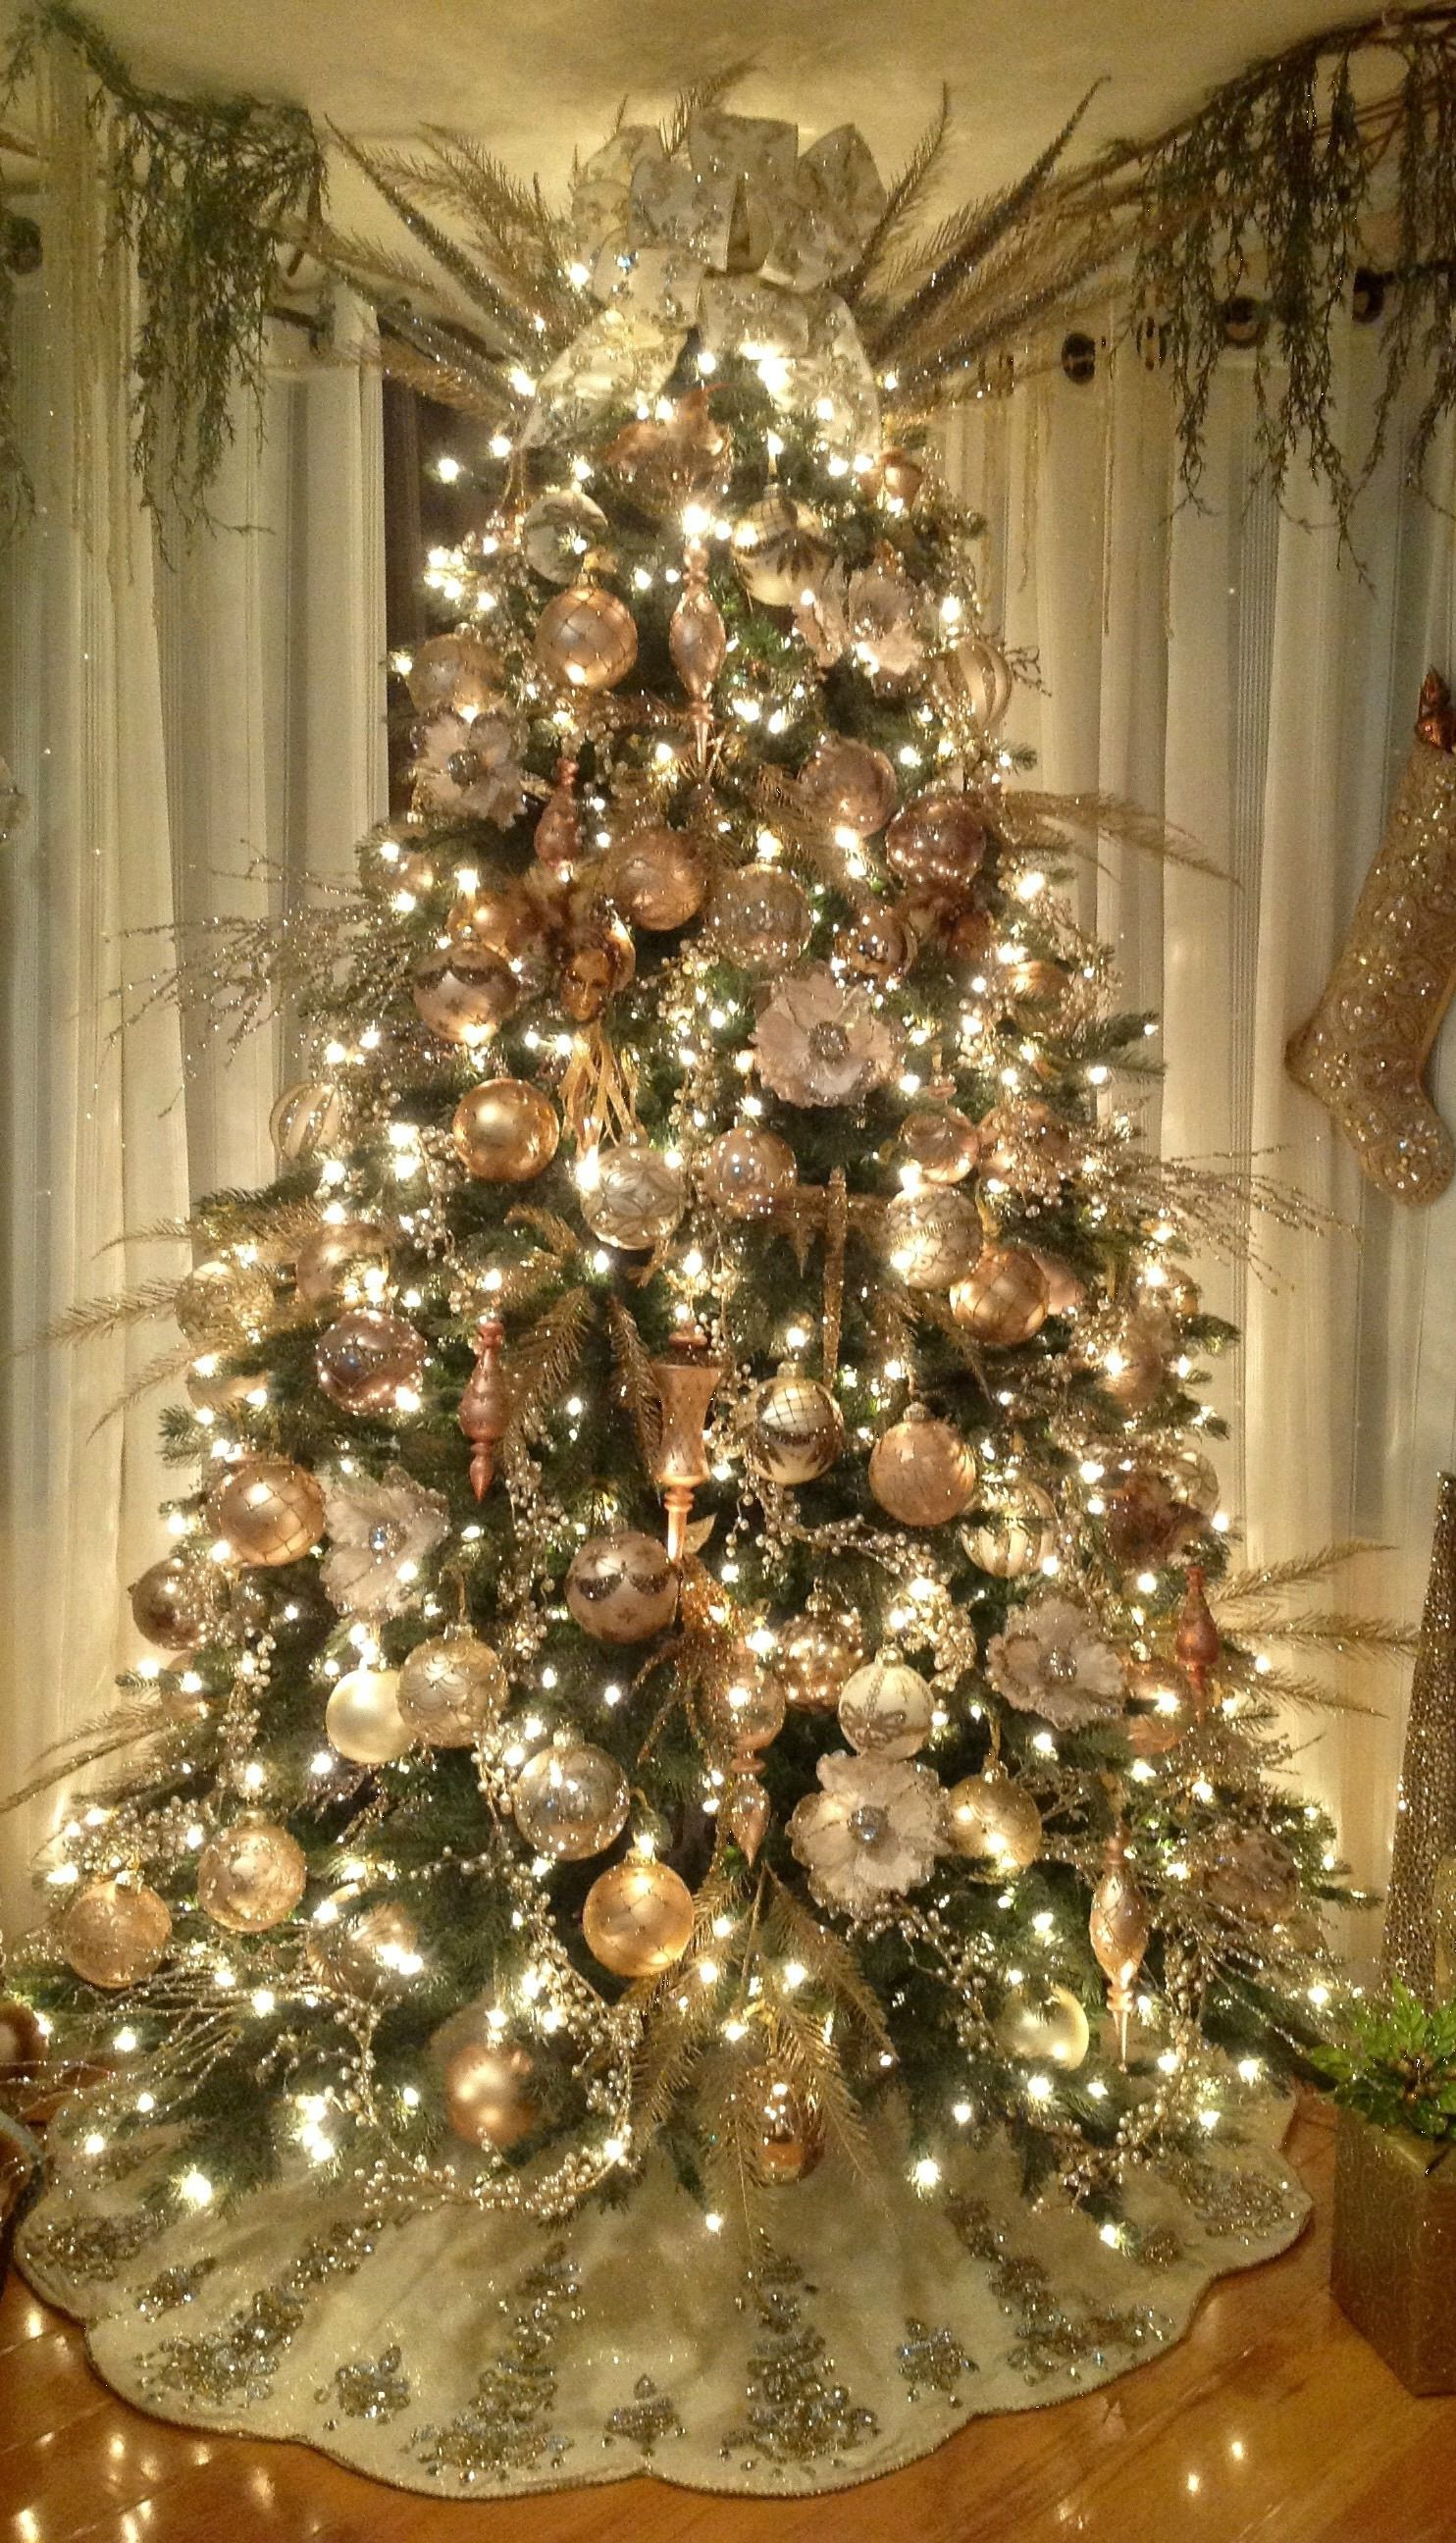 The Ultimate Holiday Decor Challenge Christmas Tree Design Gold Christmas Decorations Christmas Tree Inspiration